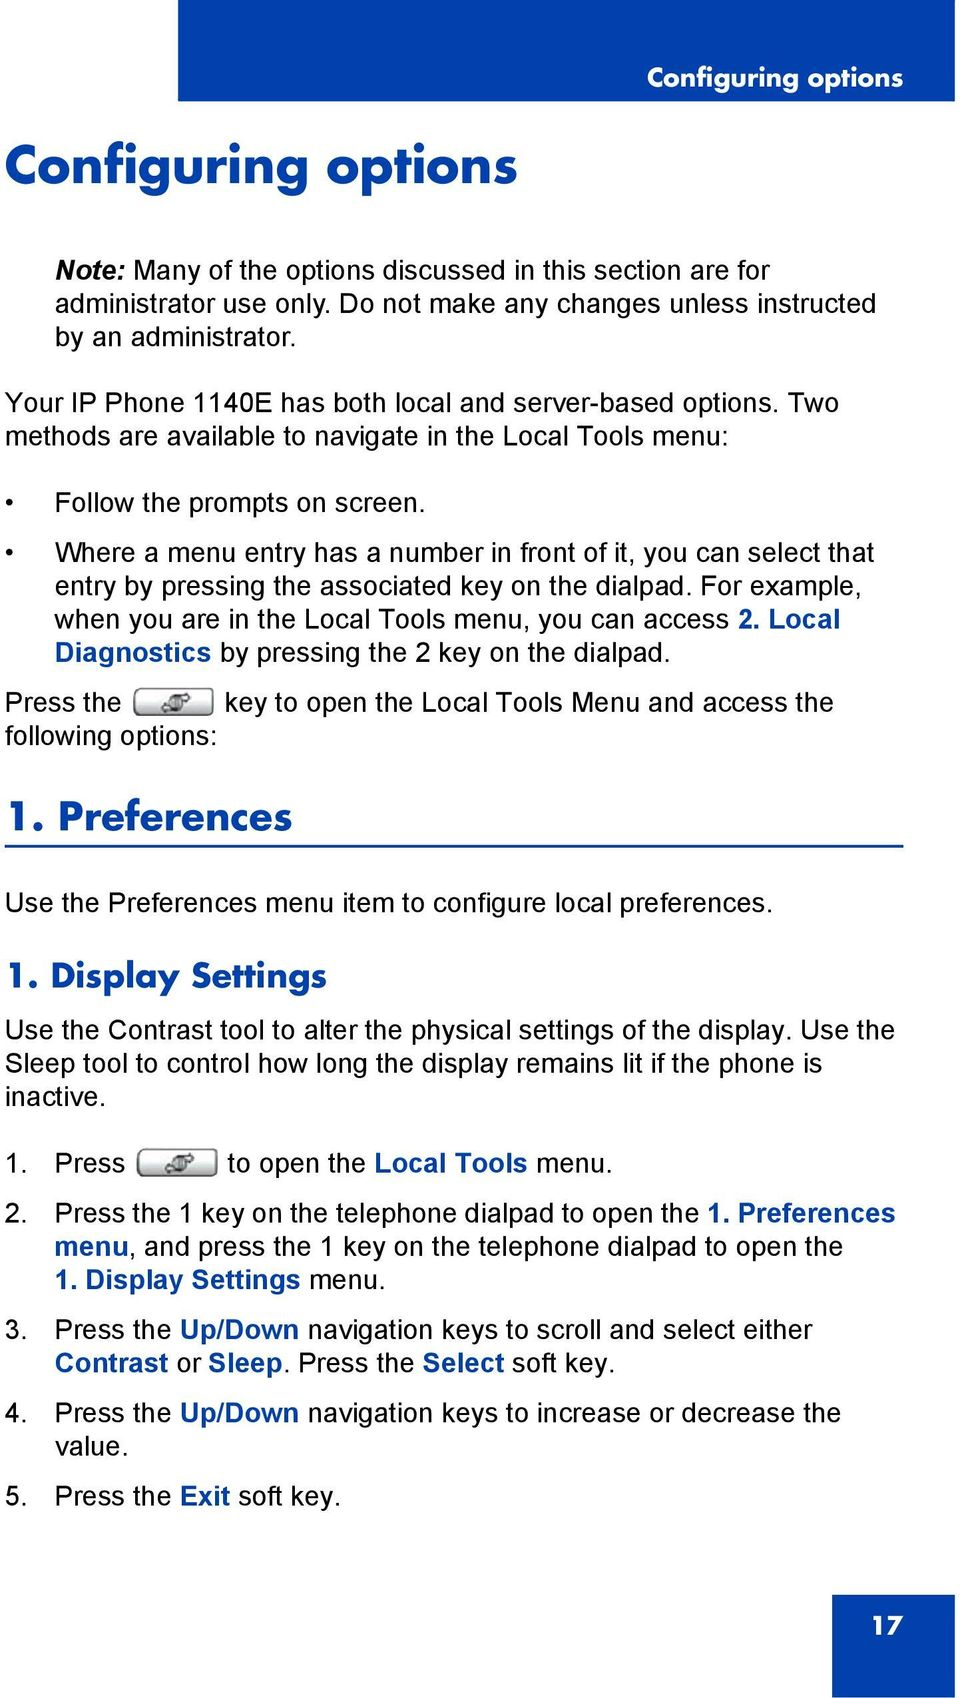 Where a menu entry has a number in front of it, you can select that entry by pressing the associated key on the dialpad. For example, when you are in the Local Tools menu, you can access 2.